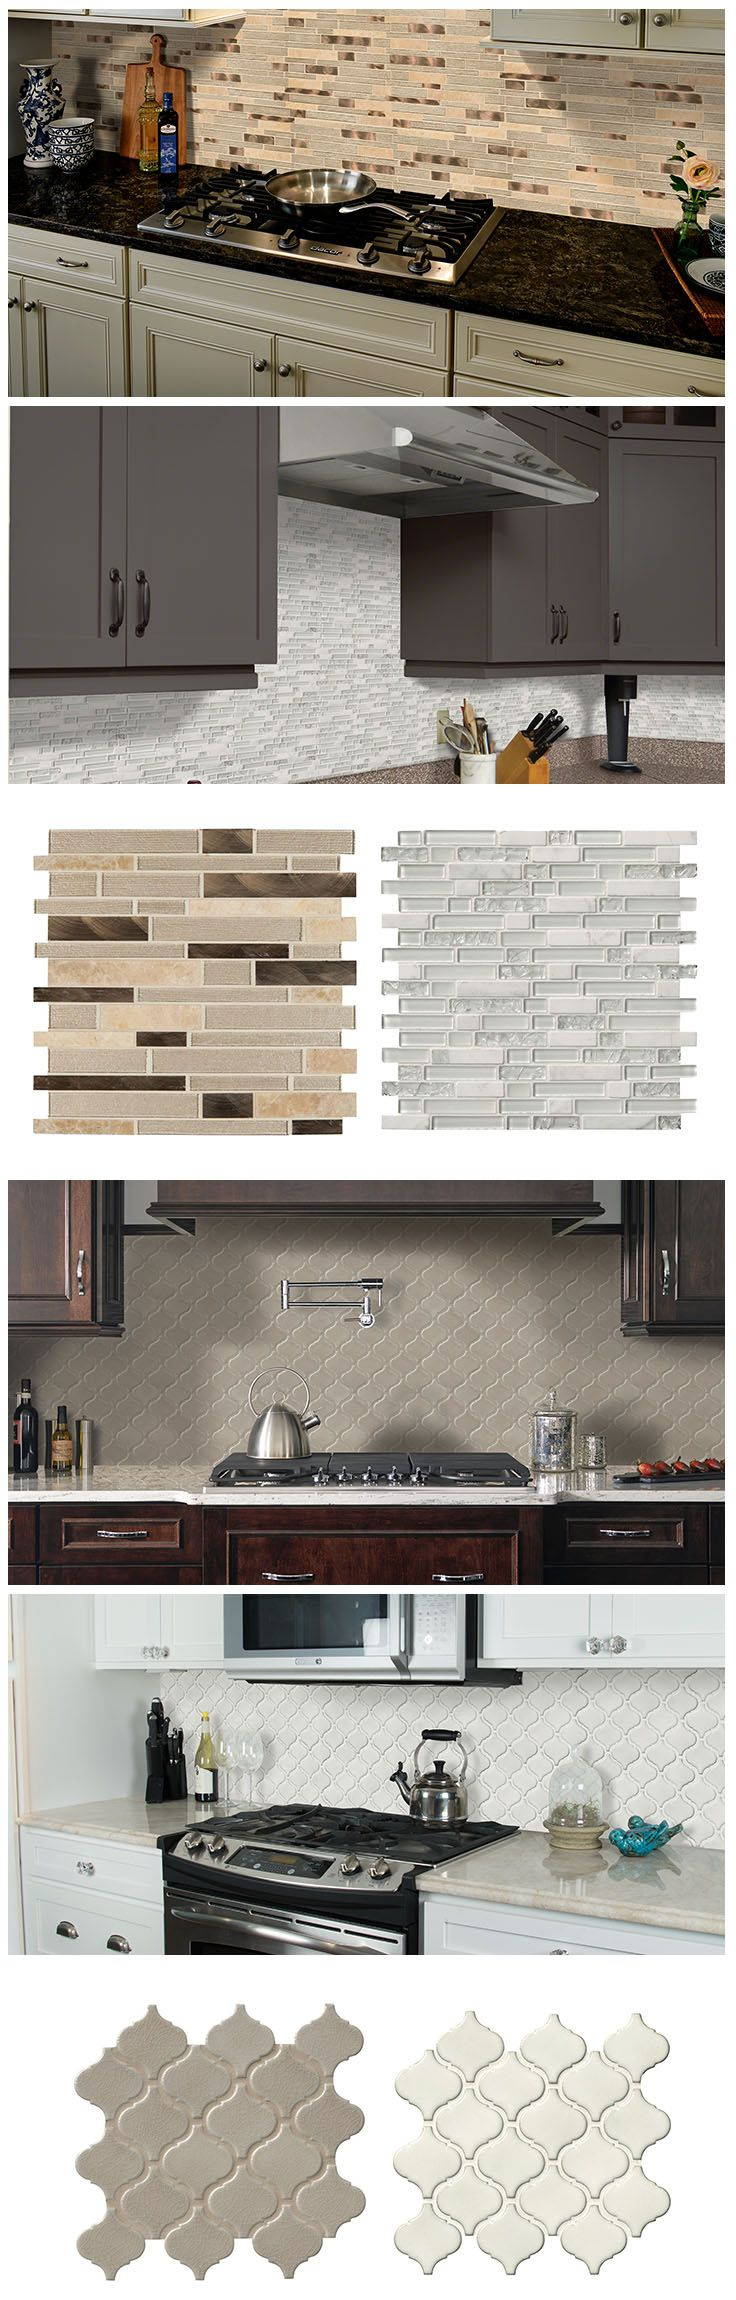 How to choose a metal tile so that later there are no leaks 5